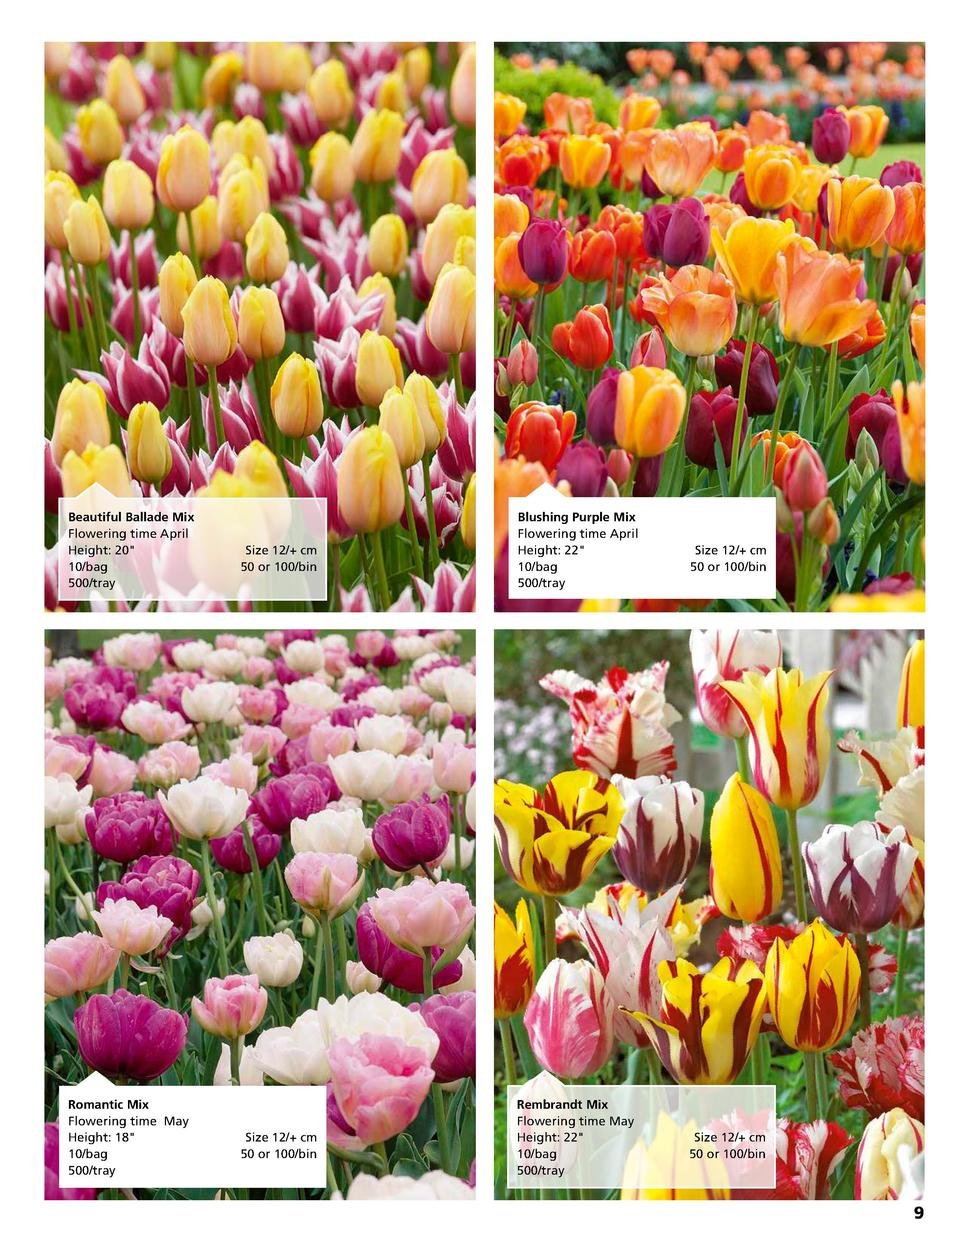 Beautiful Ballade Mix Flowering time April Height  20   10 bag  500 tray  Romantic Mix Flowering time May Height  18   10 ...